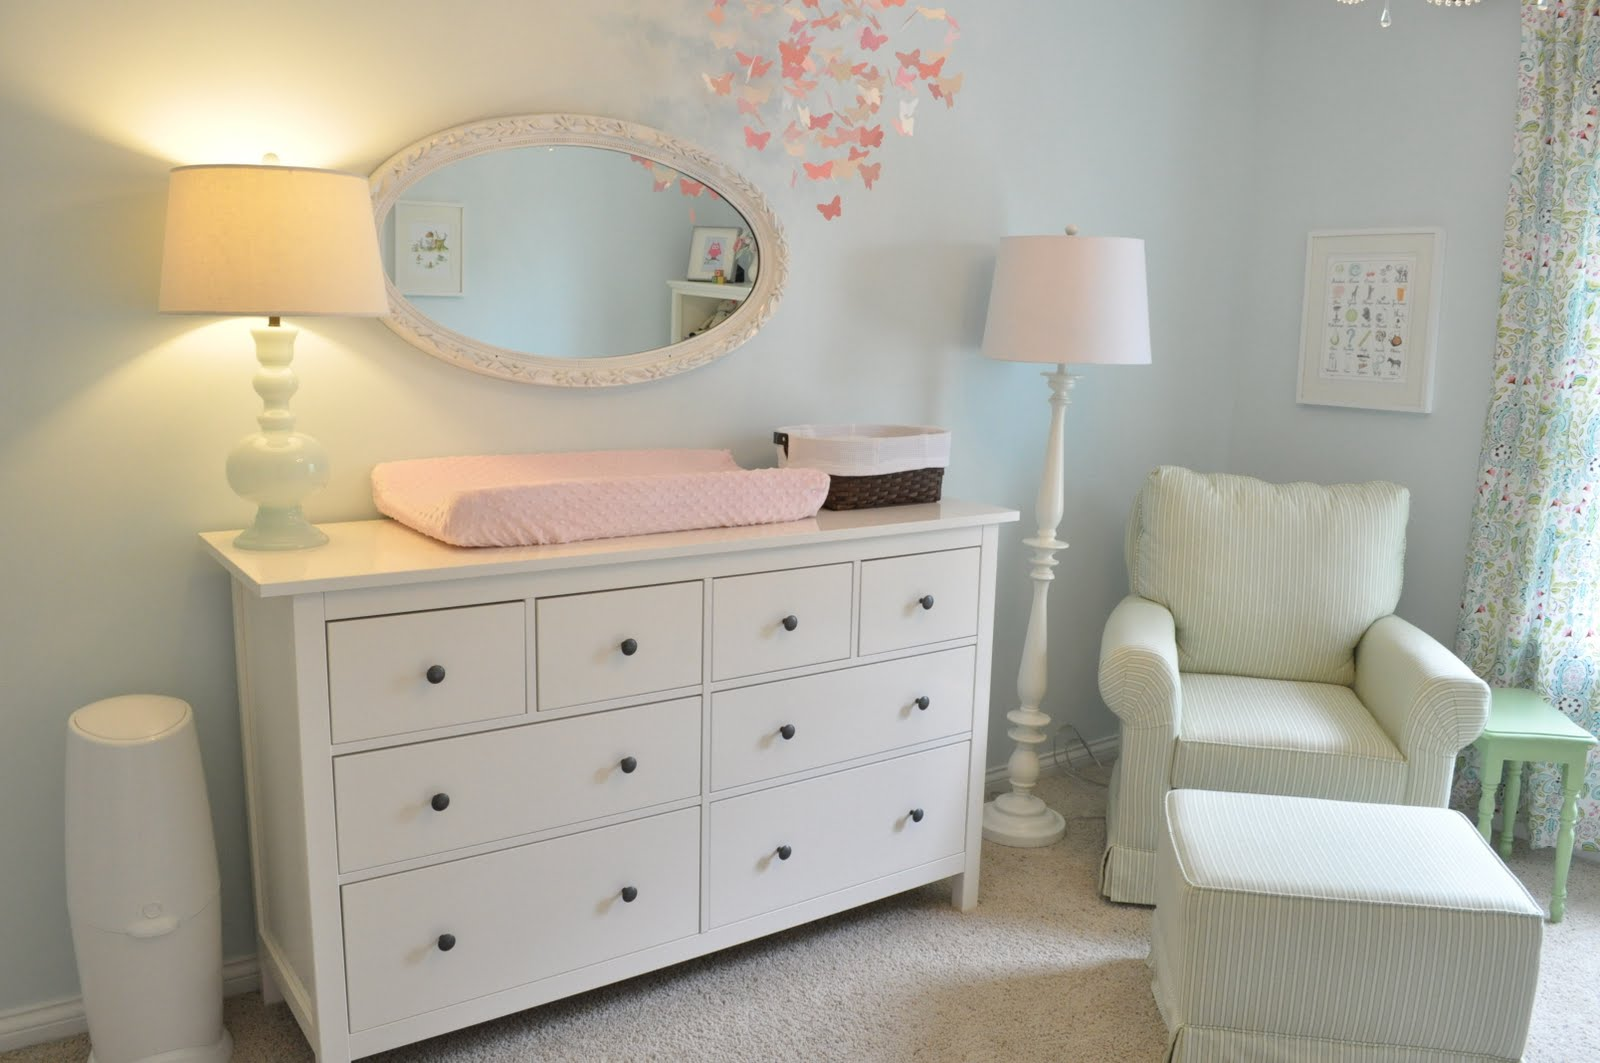 Ikea Waschtisch Unterschrank ~ Anyone have pics of Ikea Hemnes dresser in nursery? — The Bump